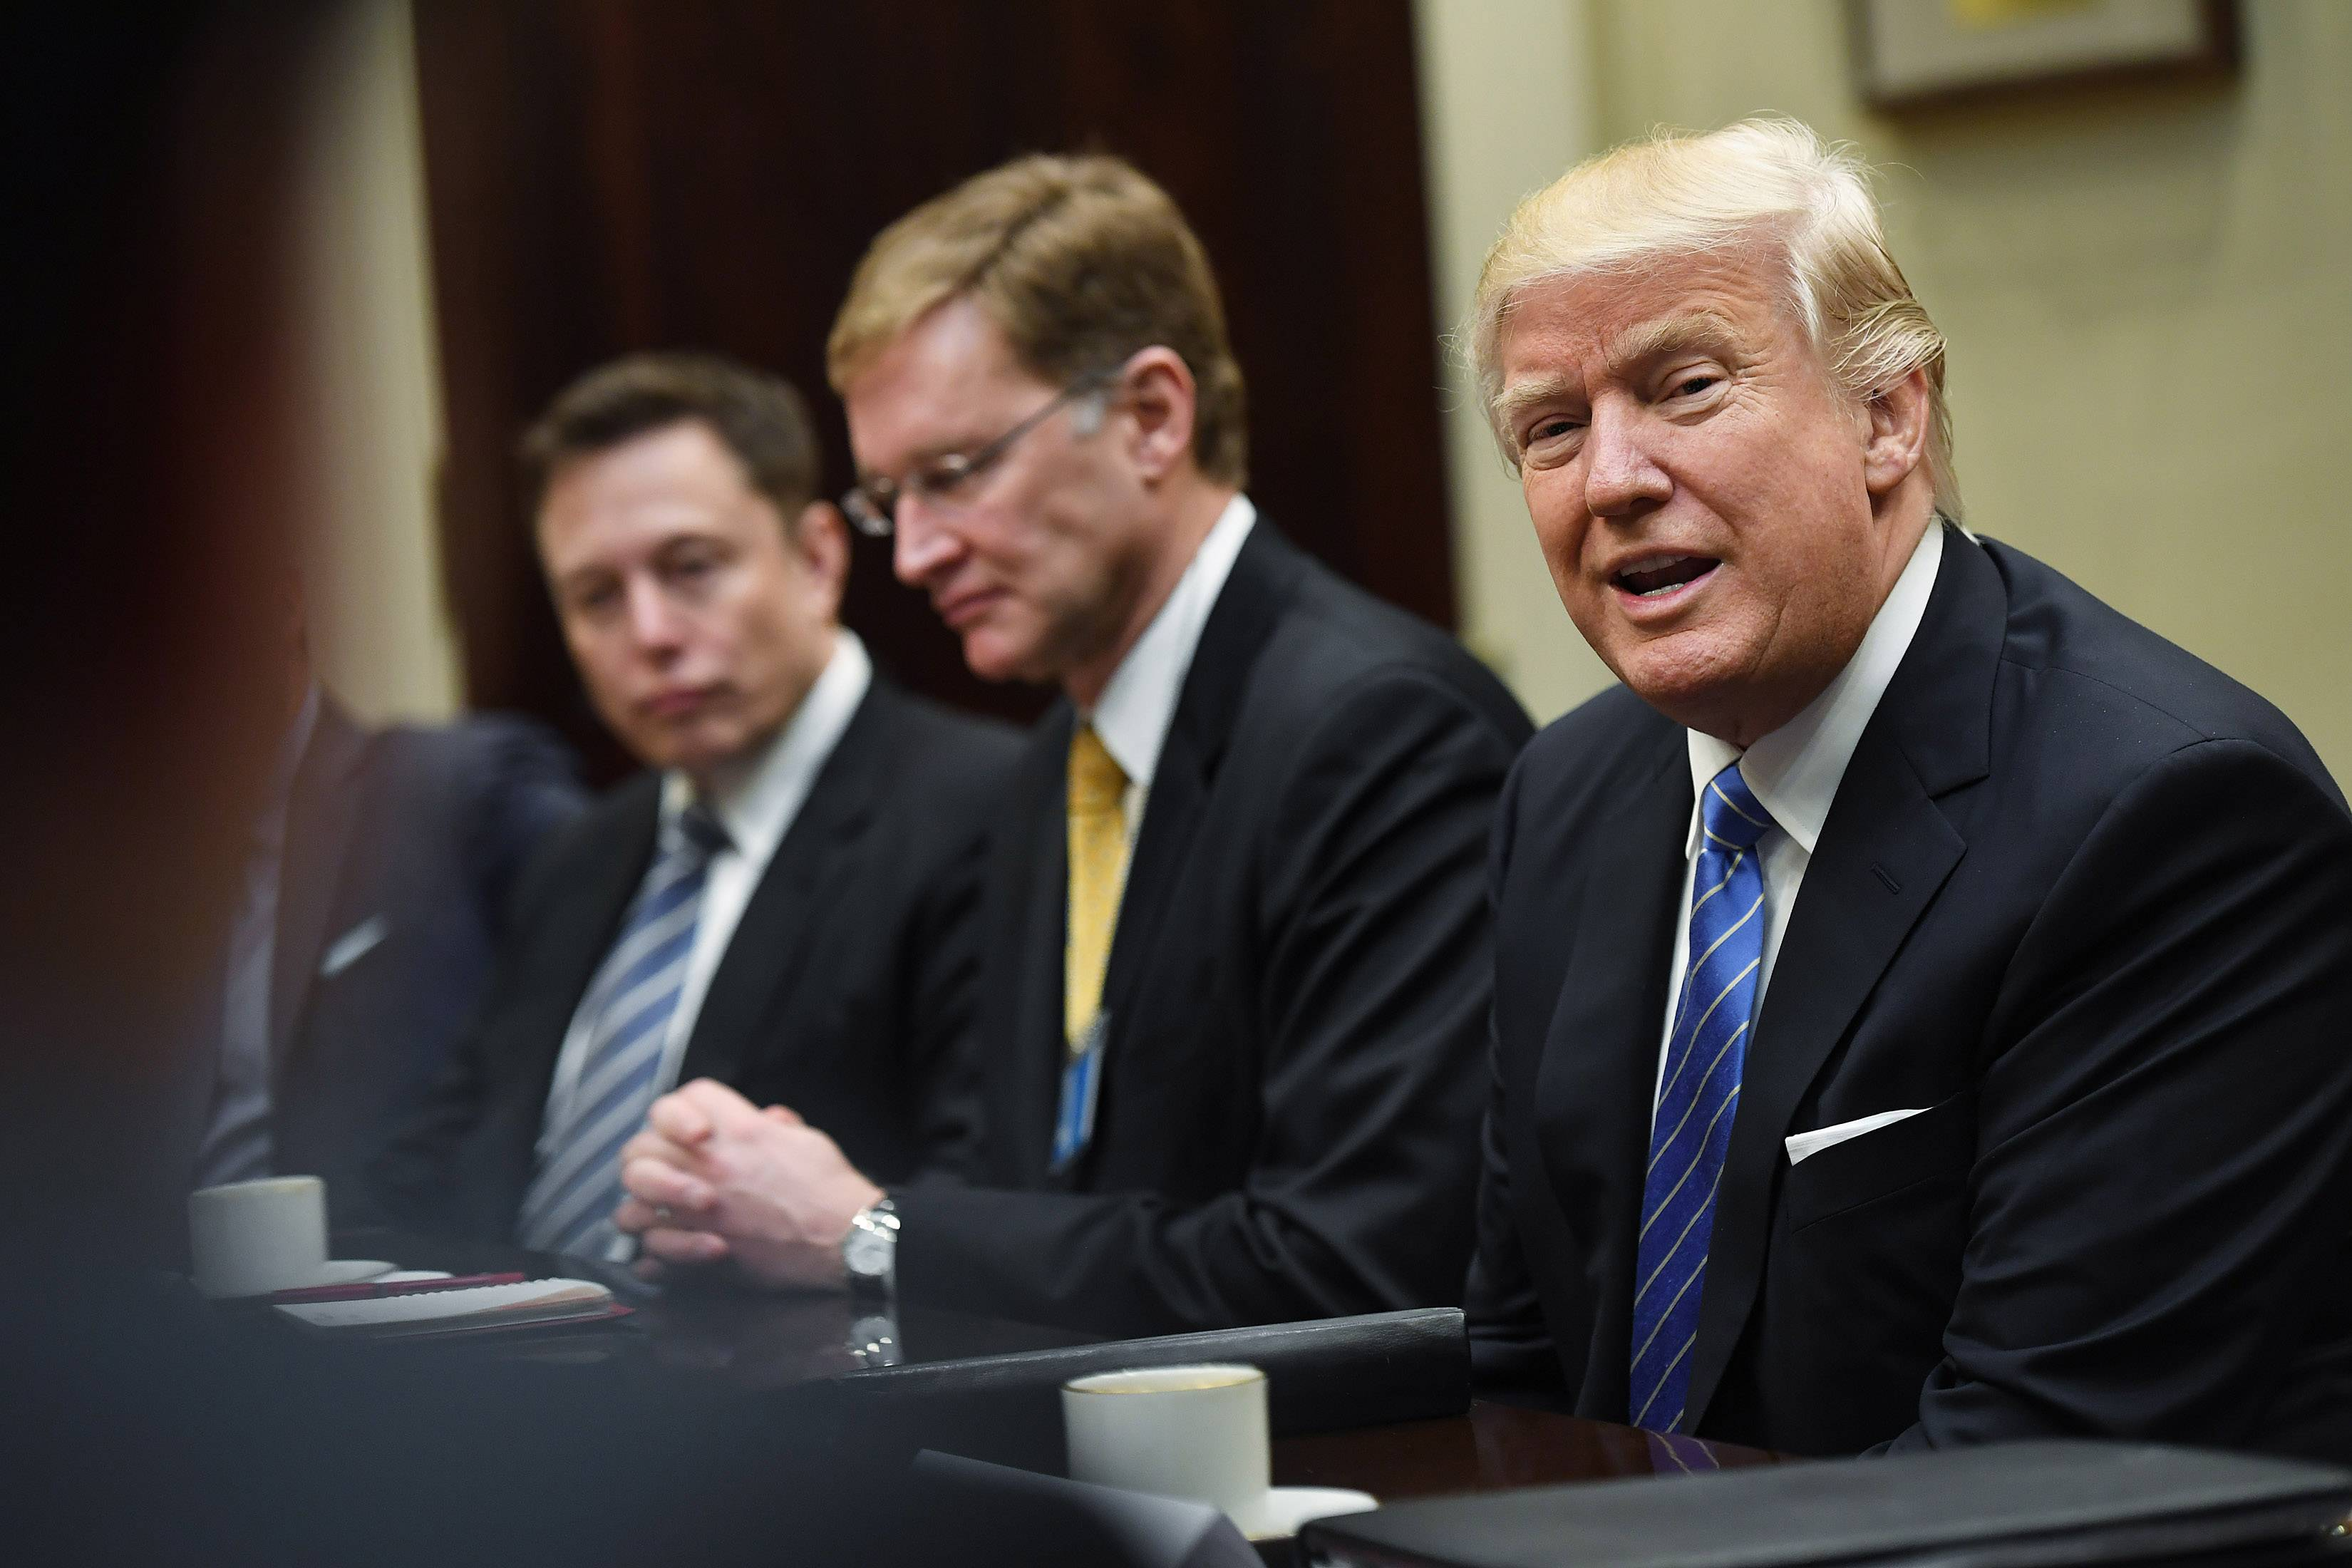 Elon Musk, left, and Wendell Weeks, center, listen to President Donald Trump Monday as he meets with business leaders at the White House on Monday.